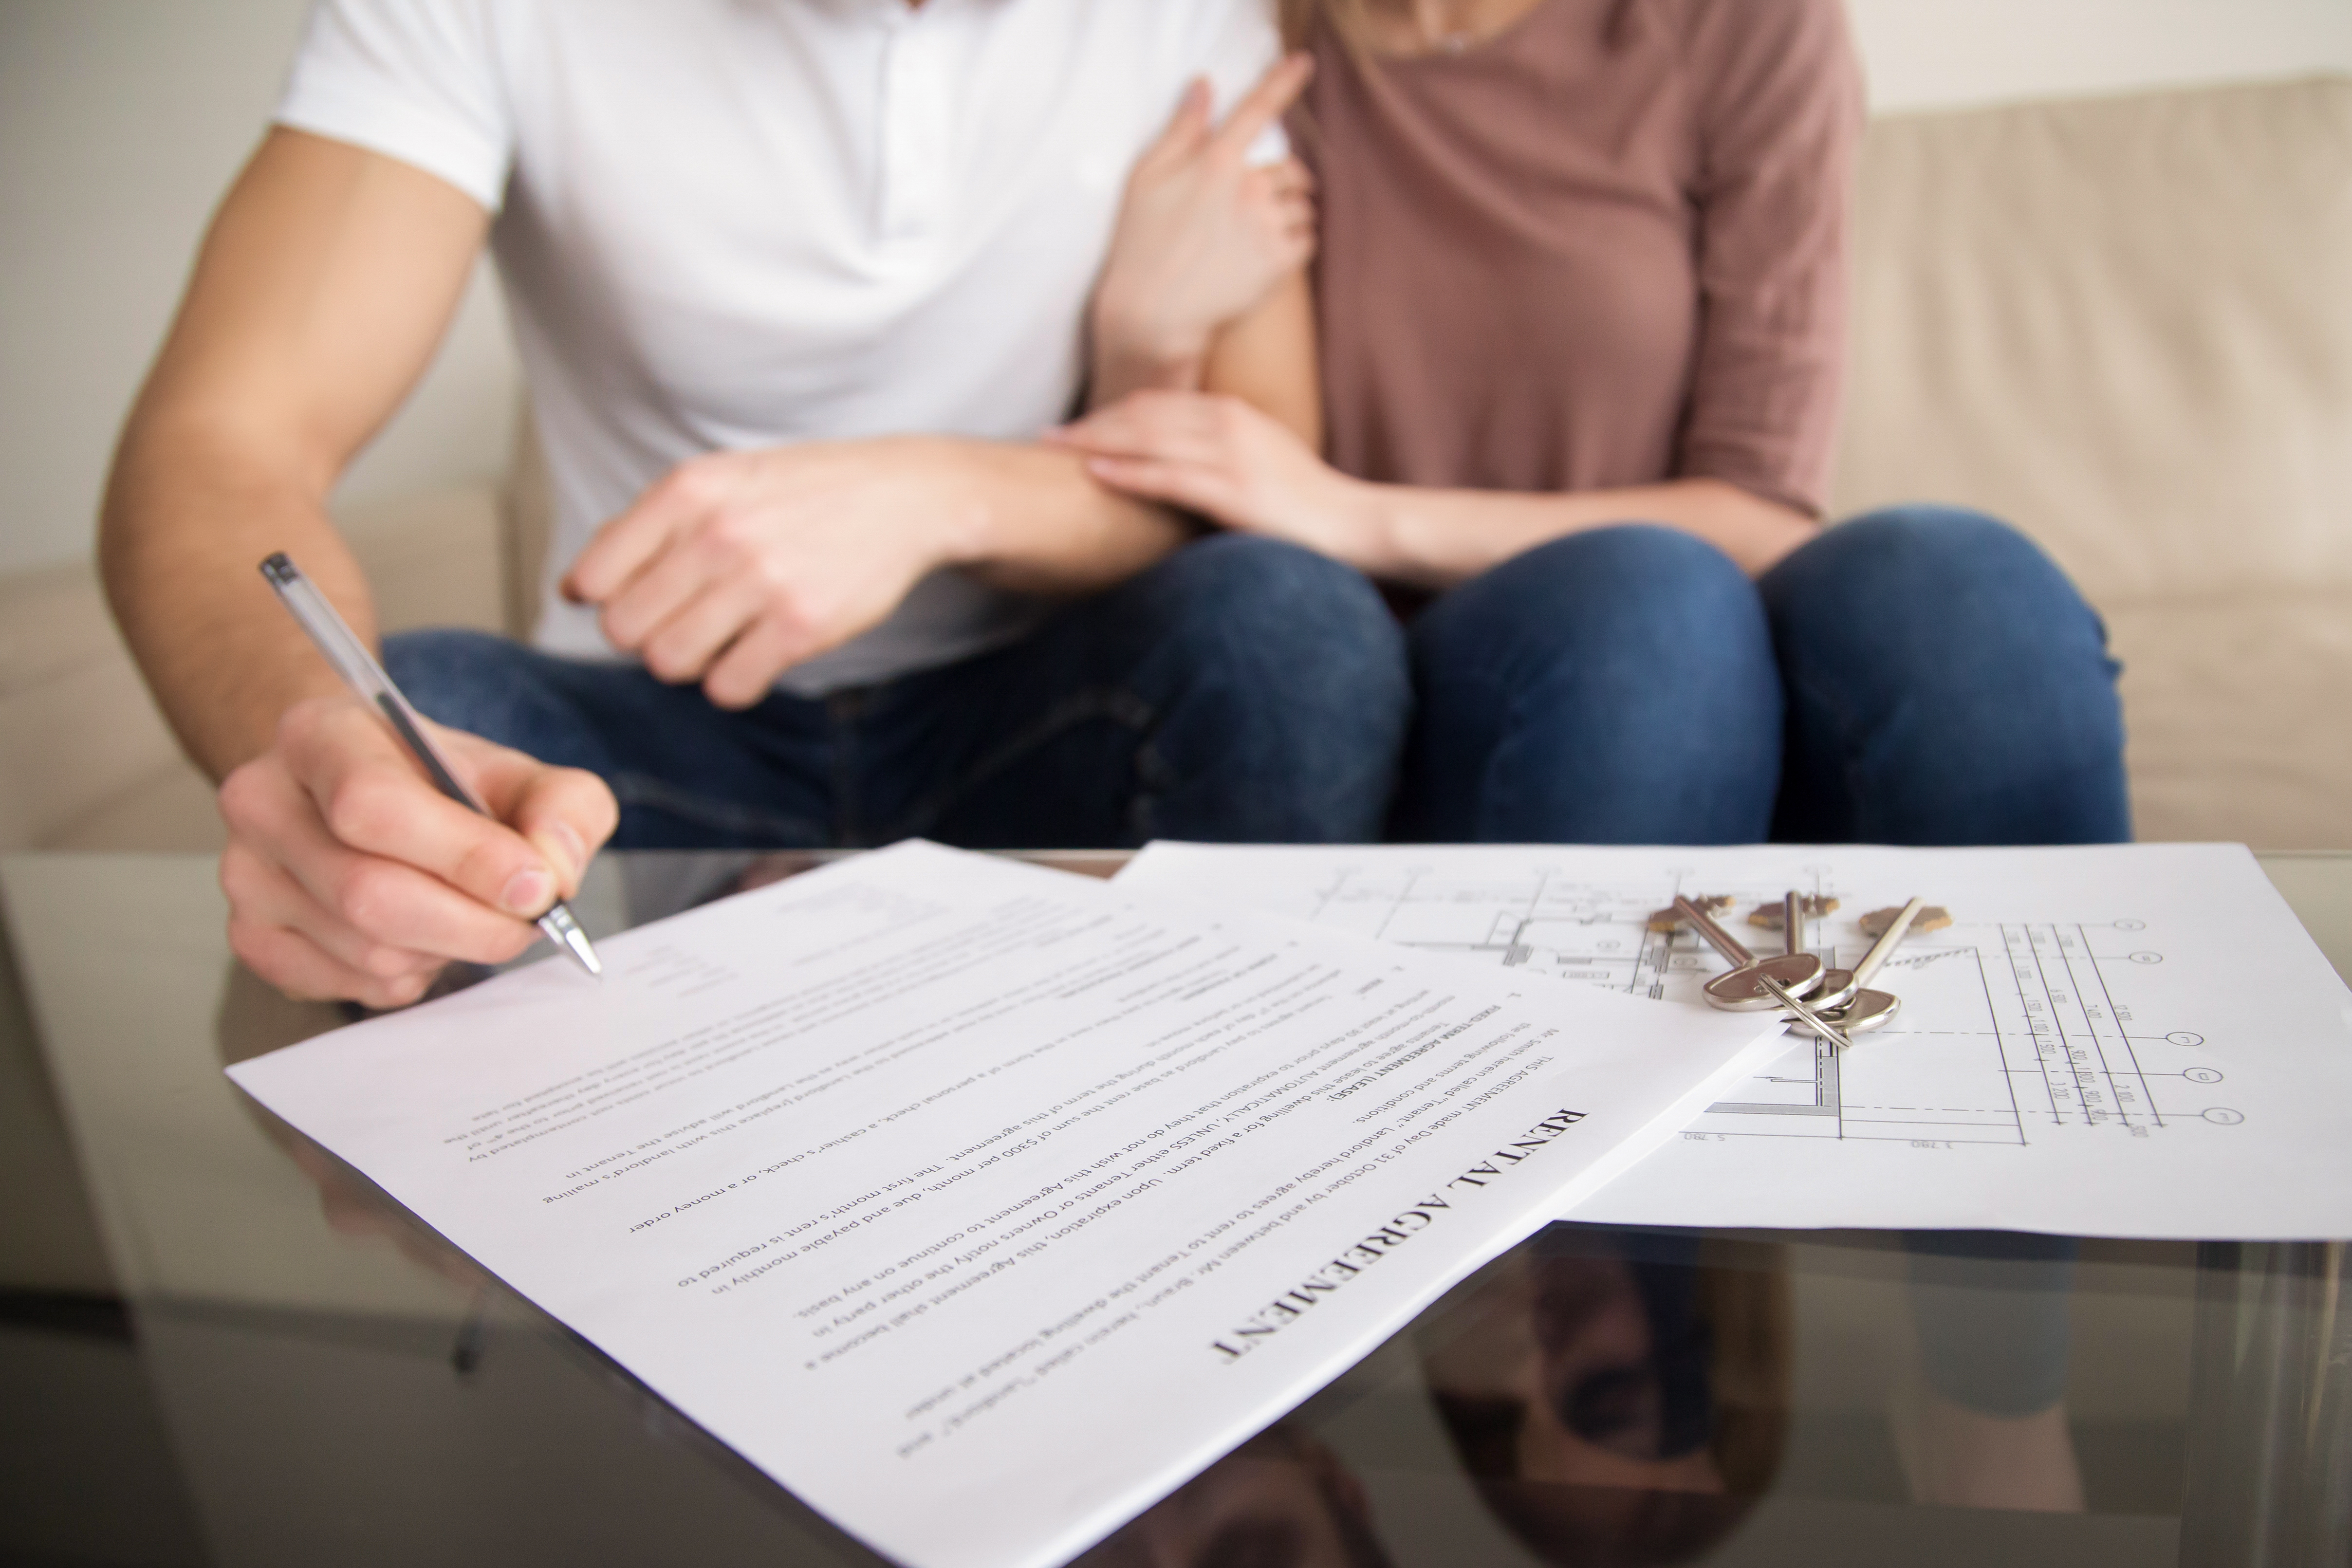 How fixed is a fixed-term tenancy?